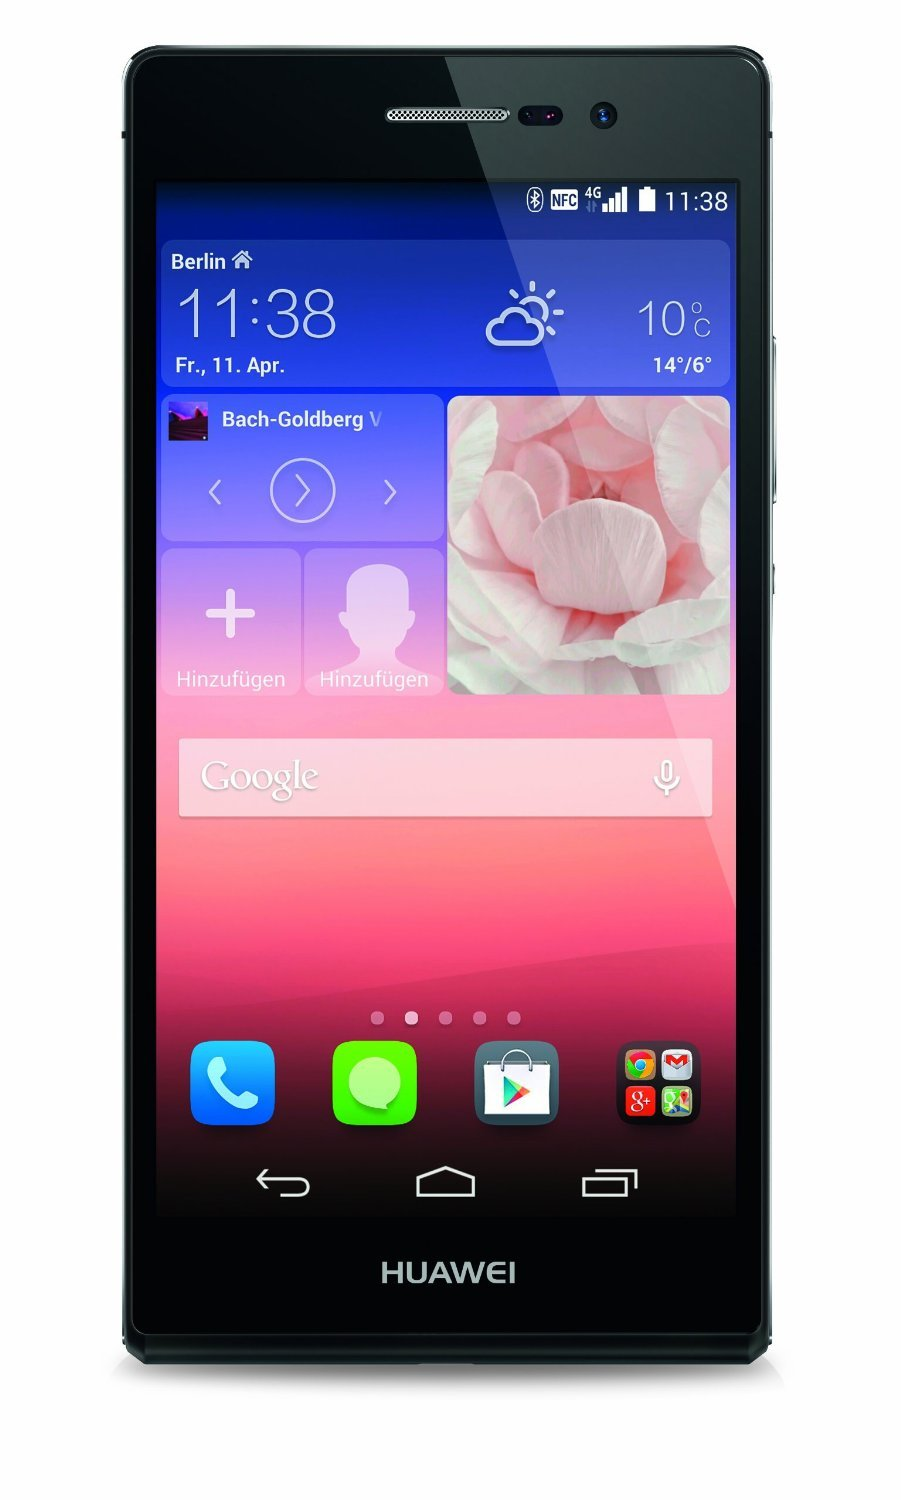 "Huawei Ascend P7 - Smartphone libre Android (pantalla 5"", cámara 13 MP, 16 GB, Quad-Core 1.8 GHz, 2.0 GB RAM) negro"